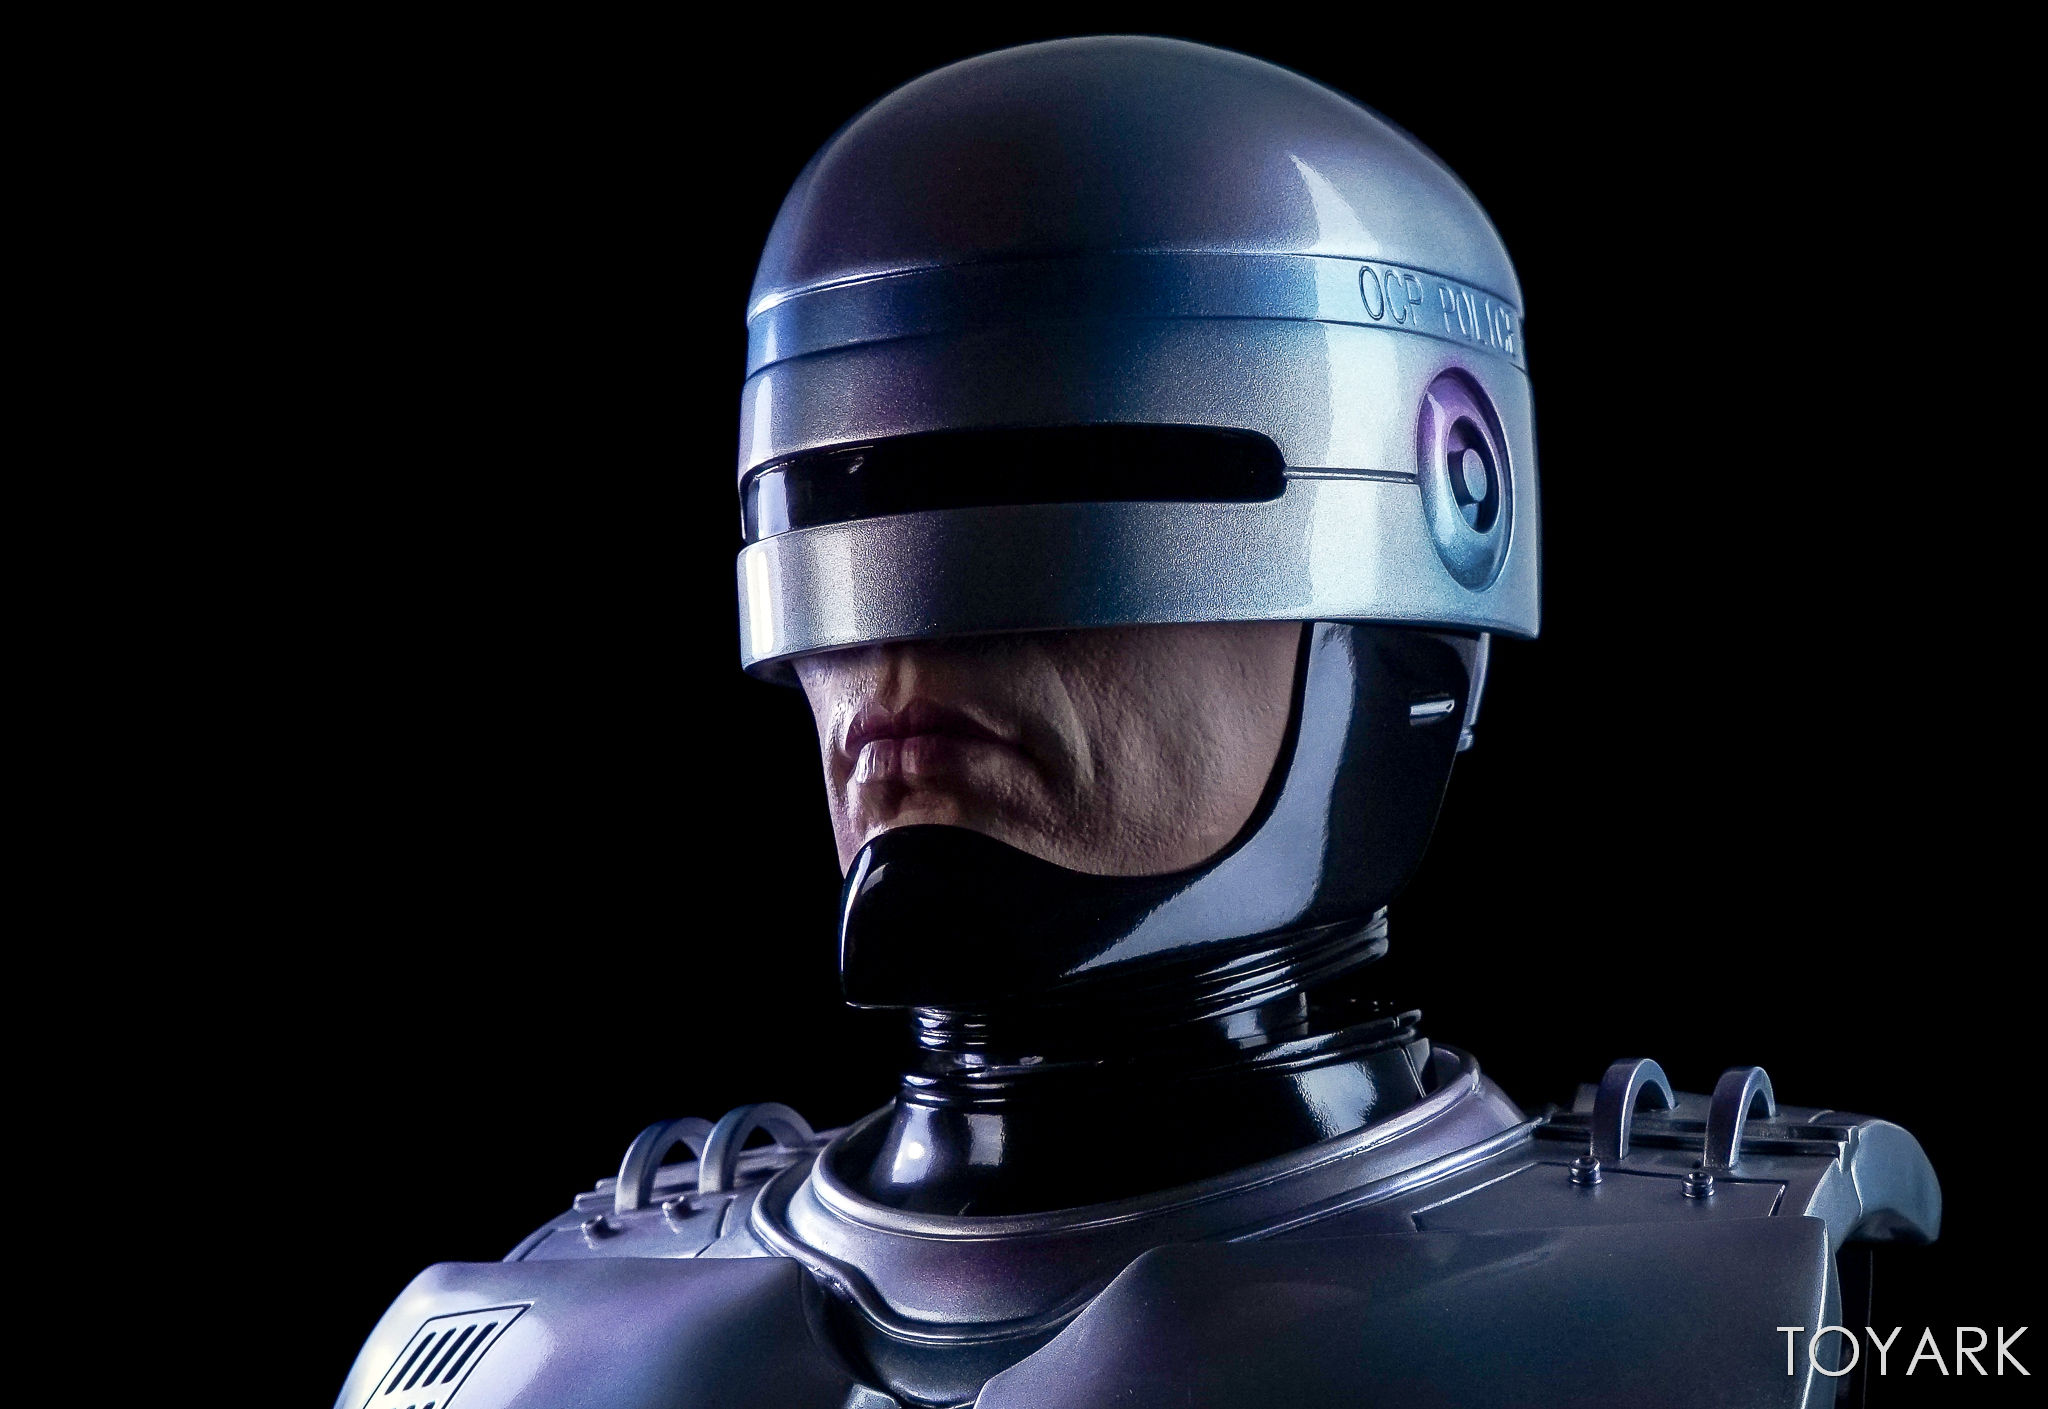 http://news.toyark.com/wp-content/uploads/sites/4/2017/09/Chronicle-Robocop-Half-Scale-Bust-026.jpg